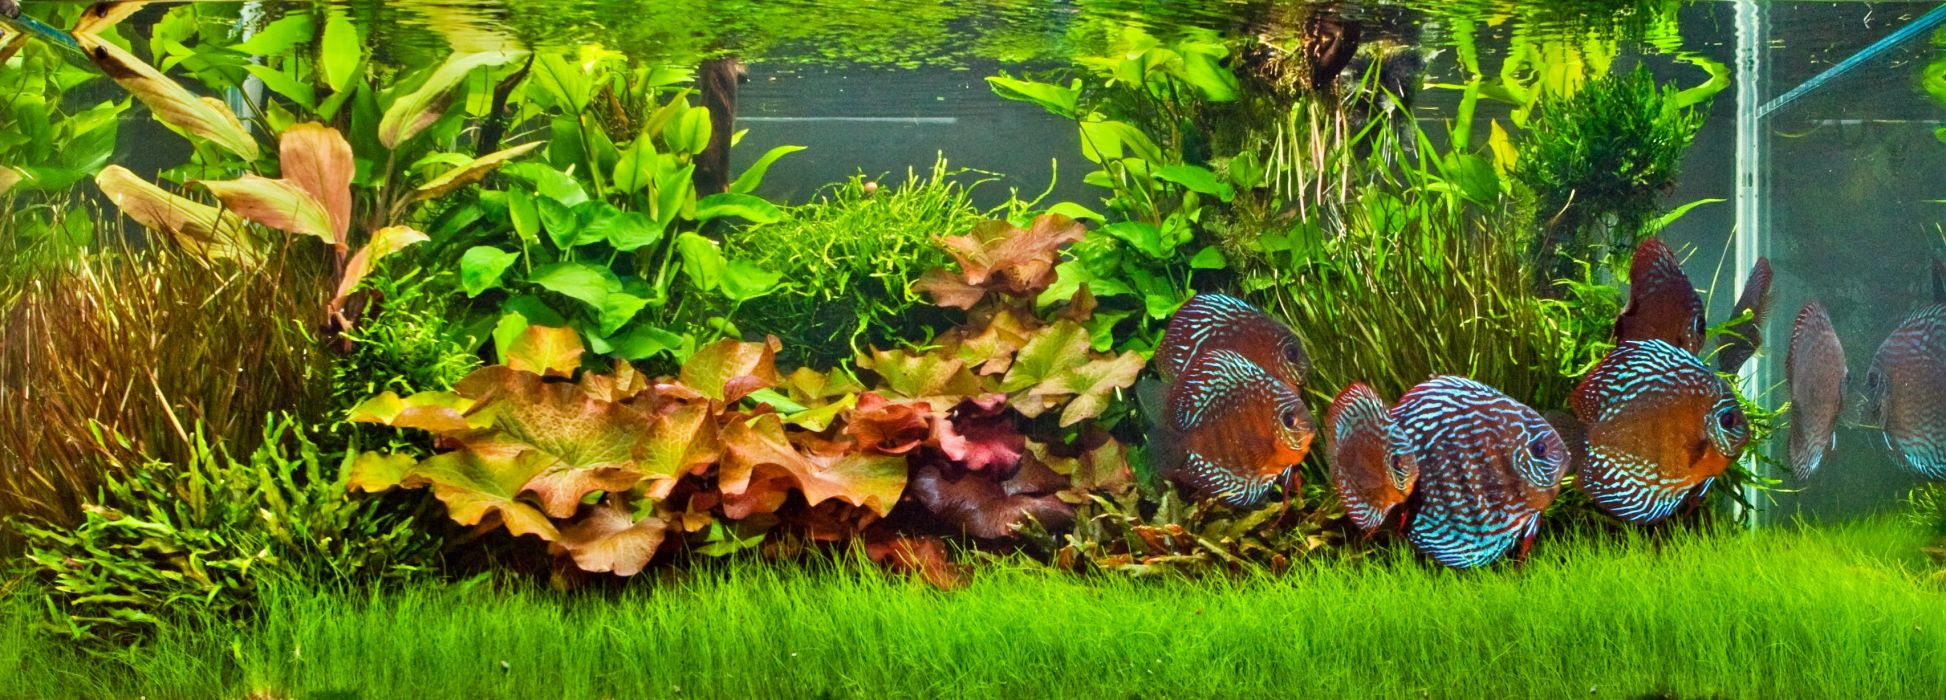 DISCUS tropical fish wallpaper